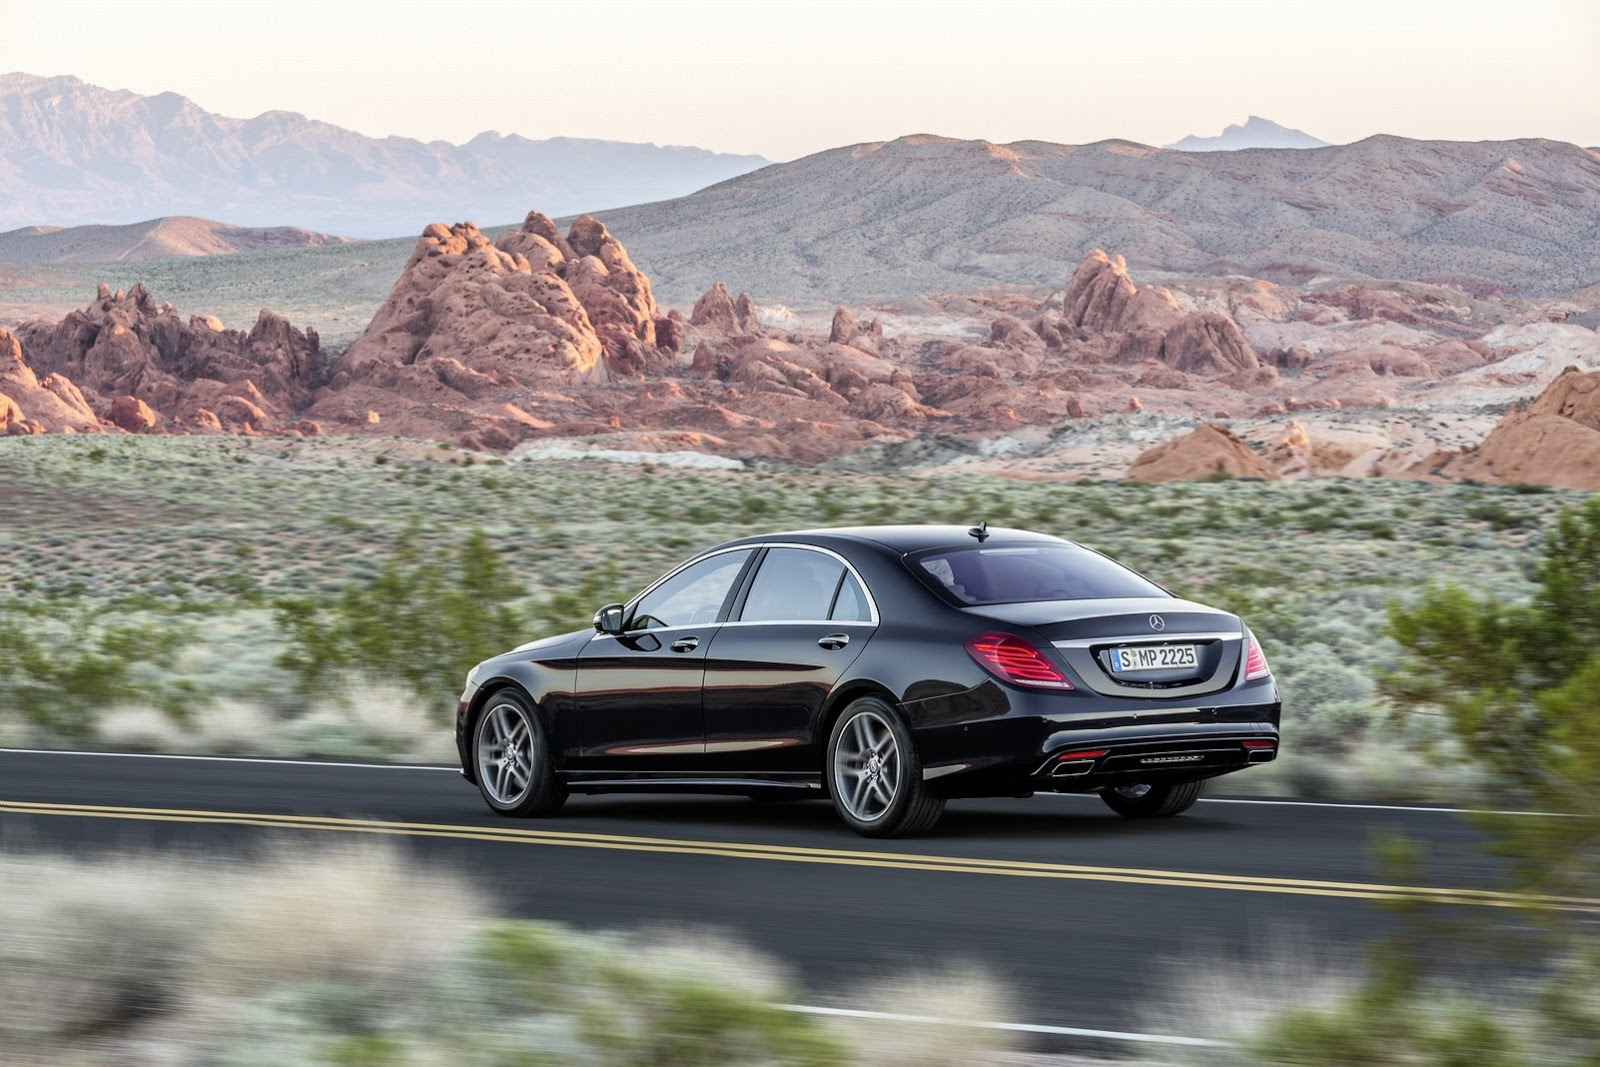 2014 Mercedes Benz S-Class - SMADE MEDIA (24)